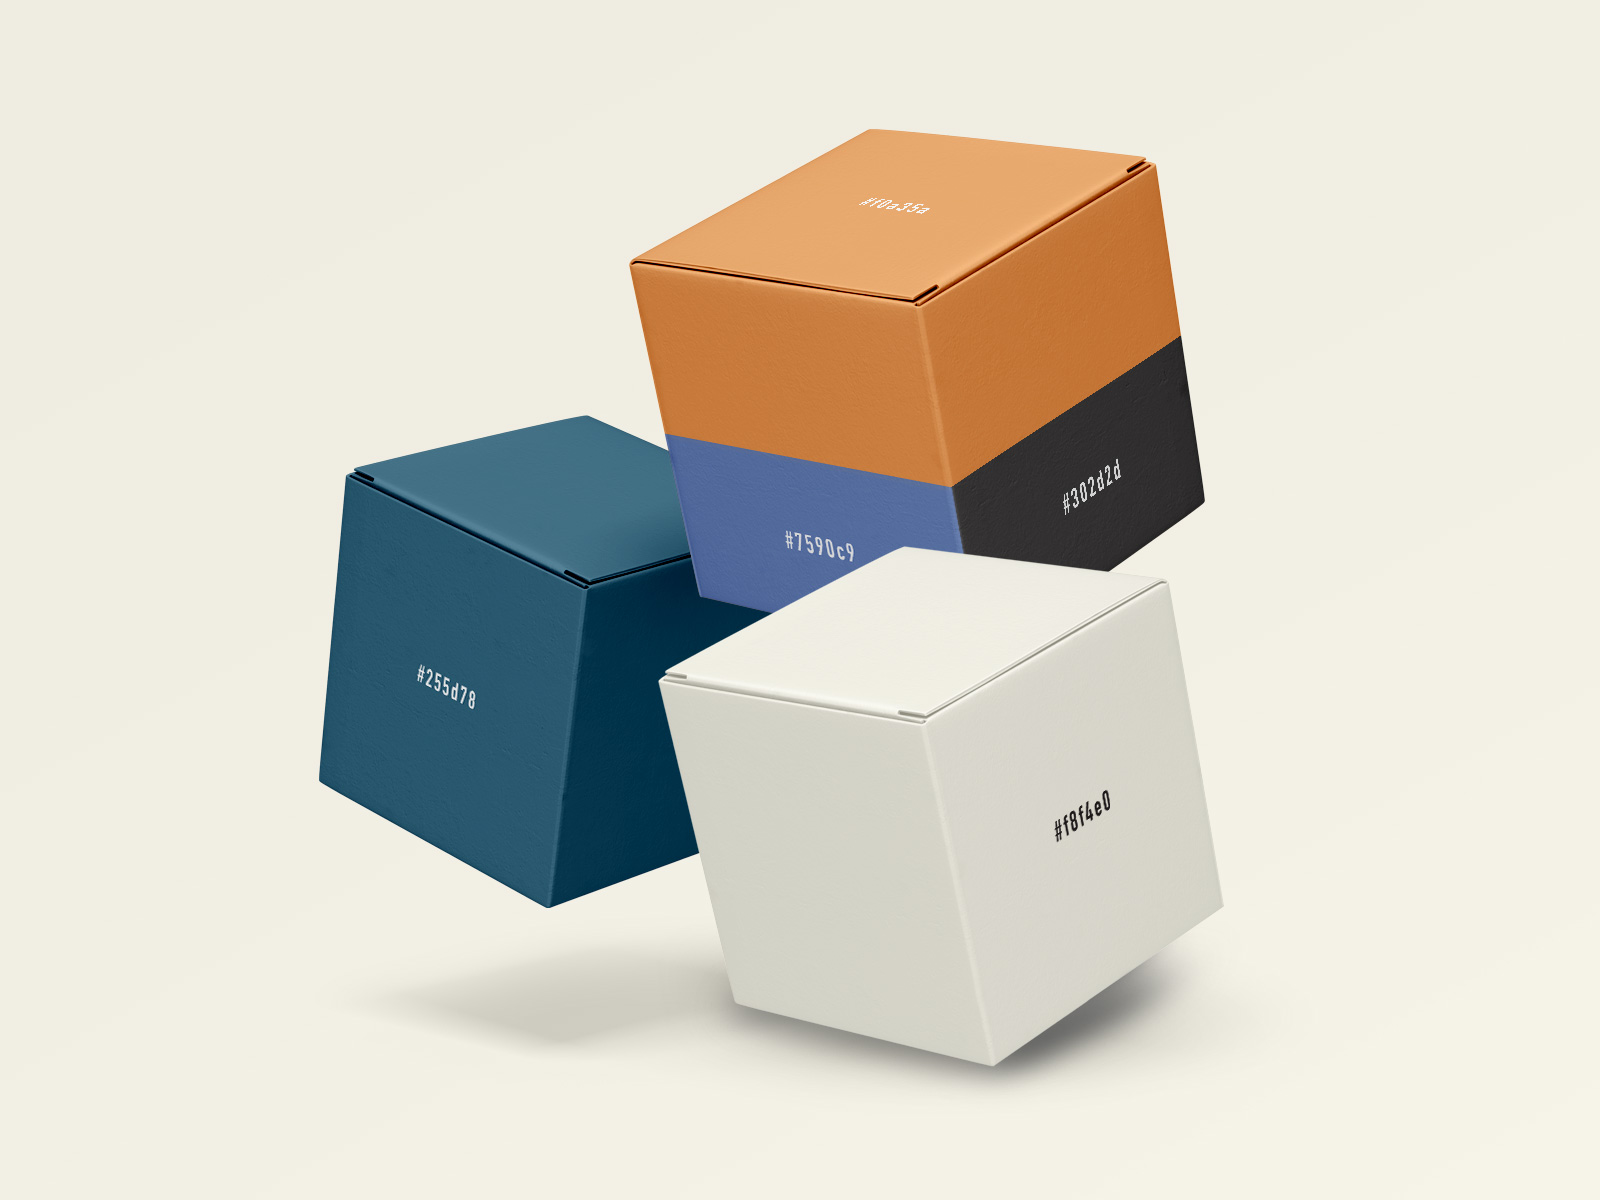 Colour Palette for High Ground Brand Identity Design Project